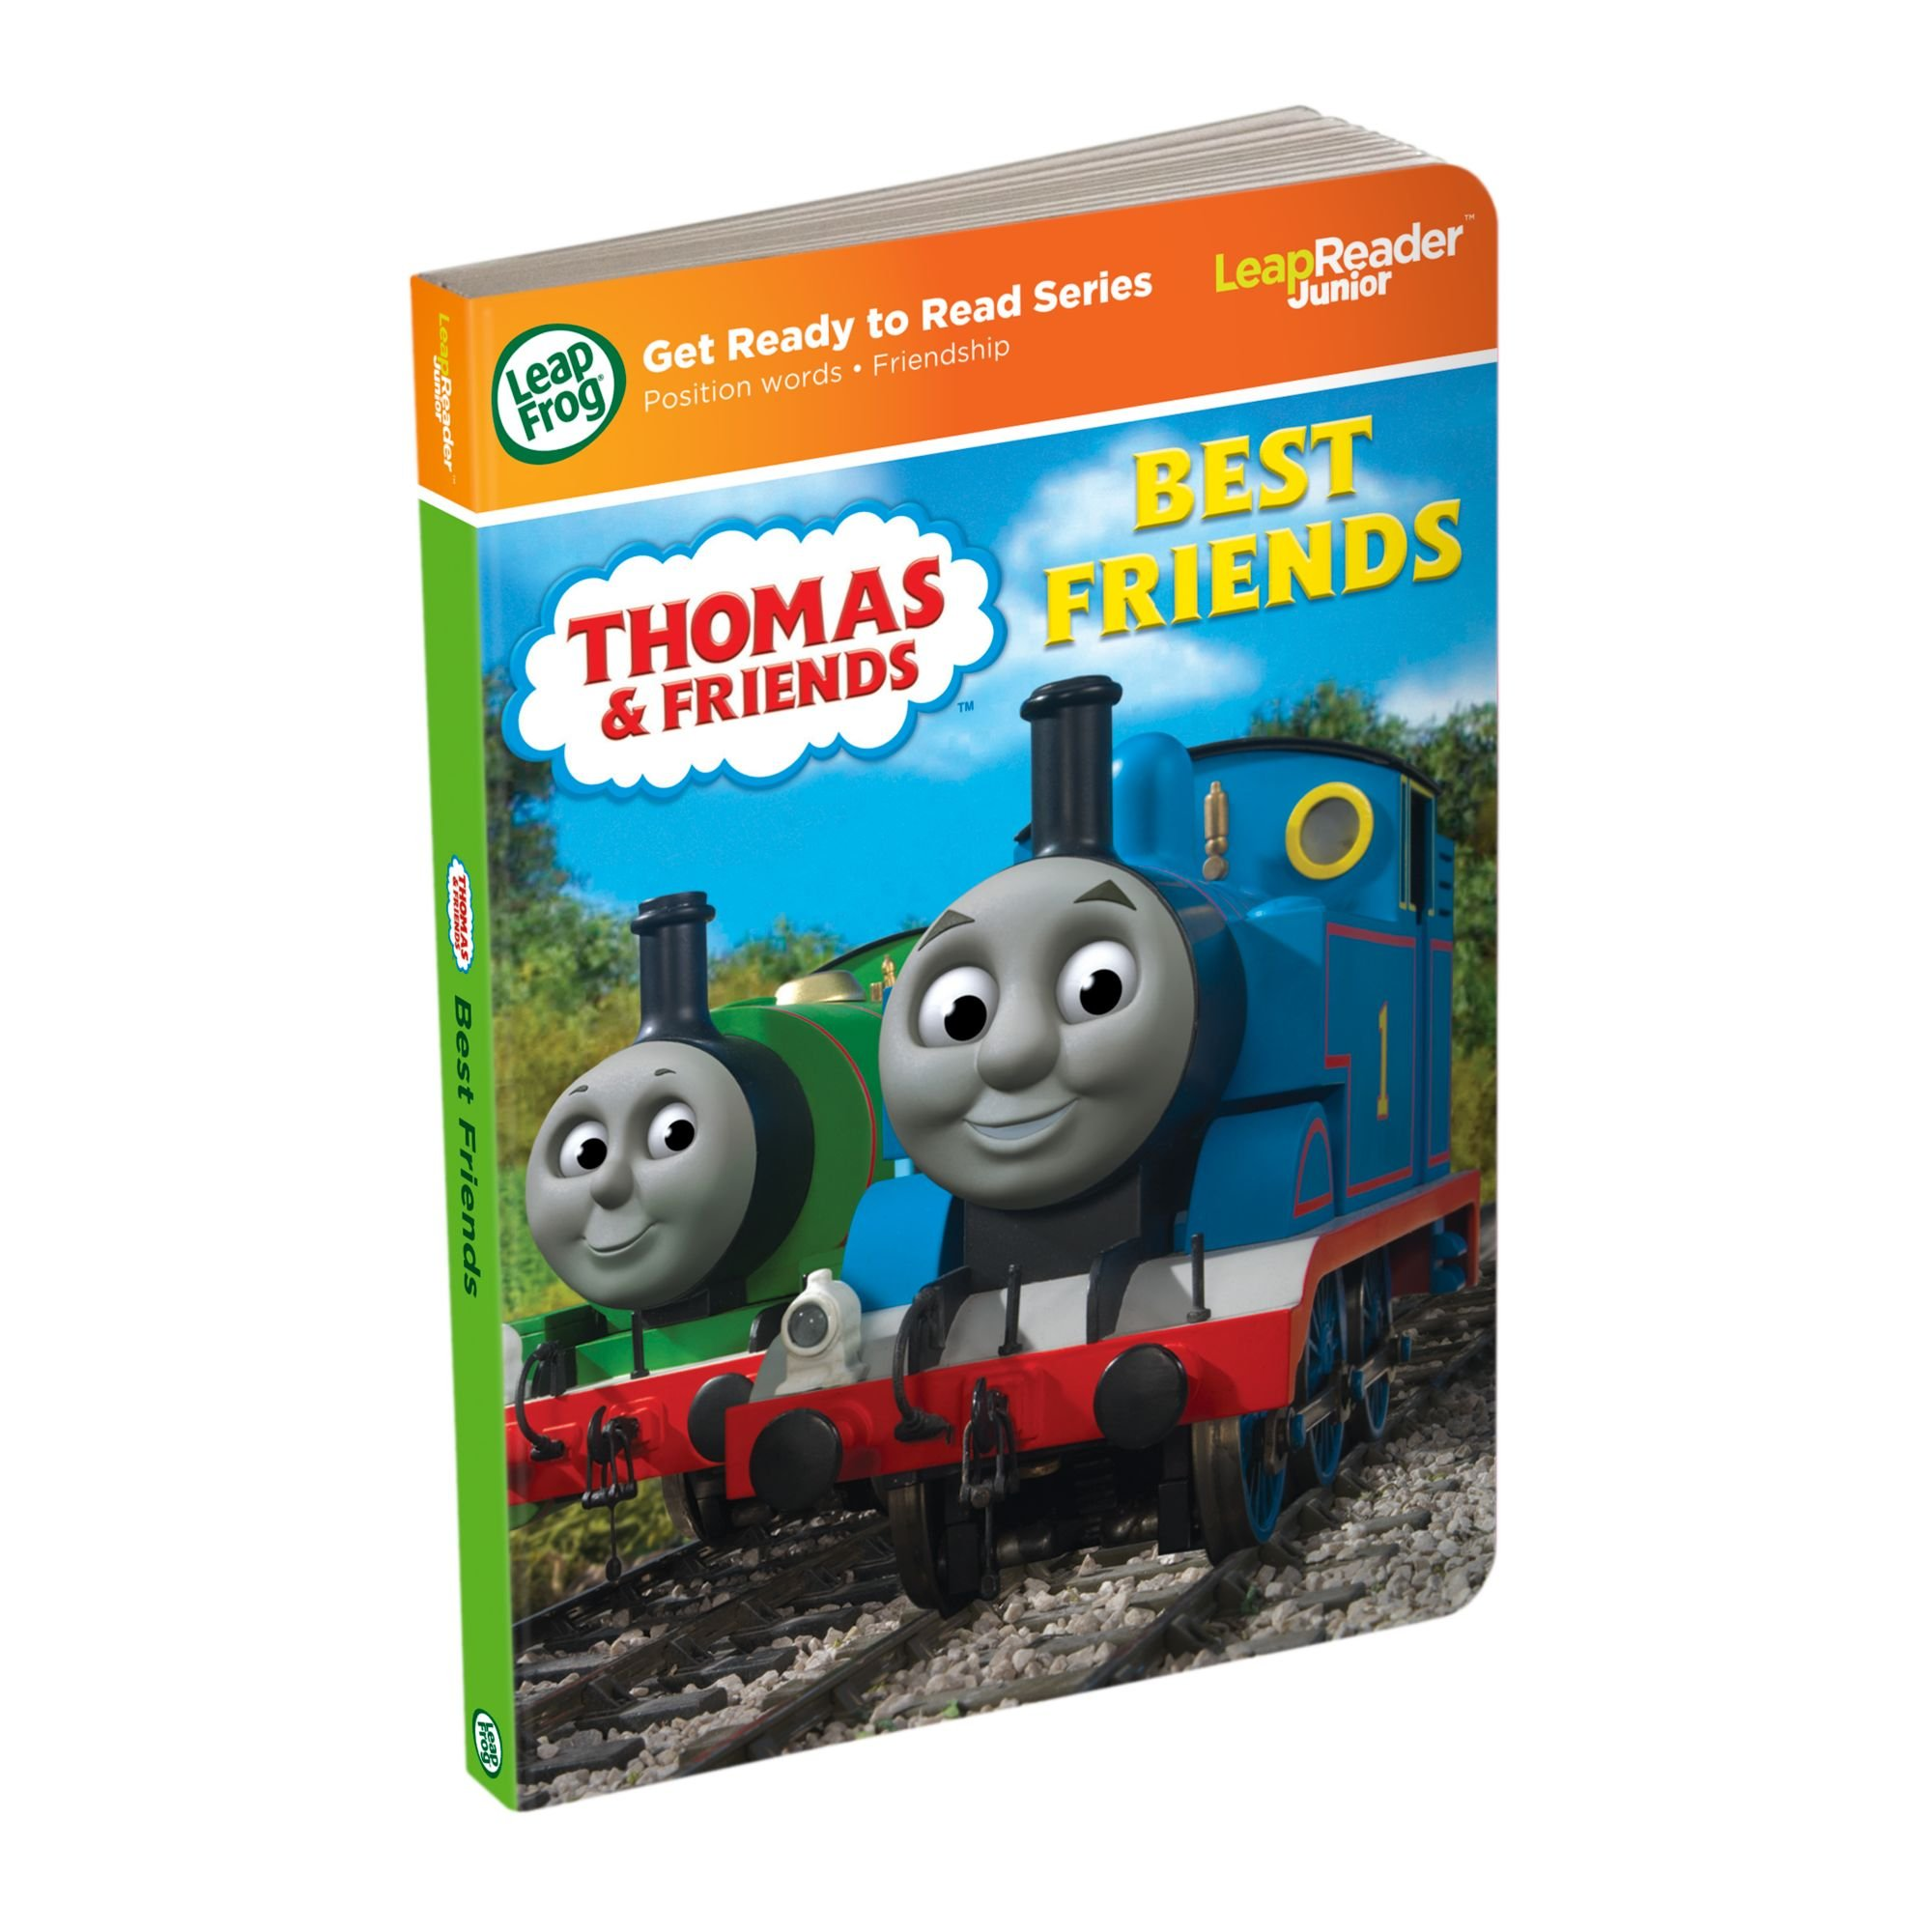 LeapFrog LeapReader Junior Book: Thomas & Friends: Best Friends (works with Tag Junior) by LeapFrog